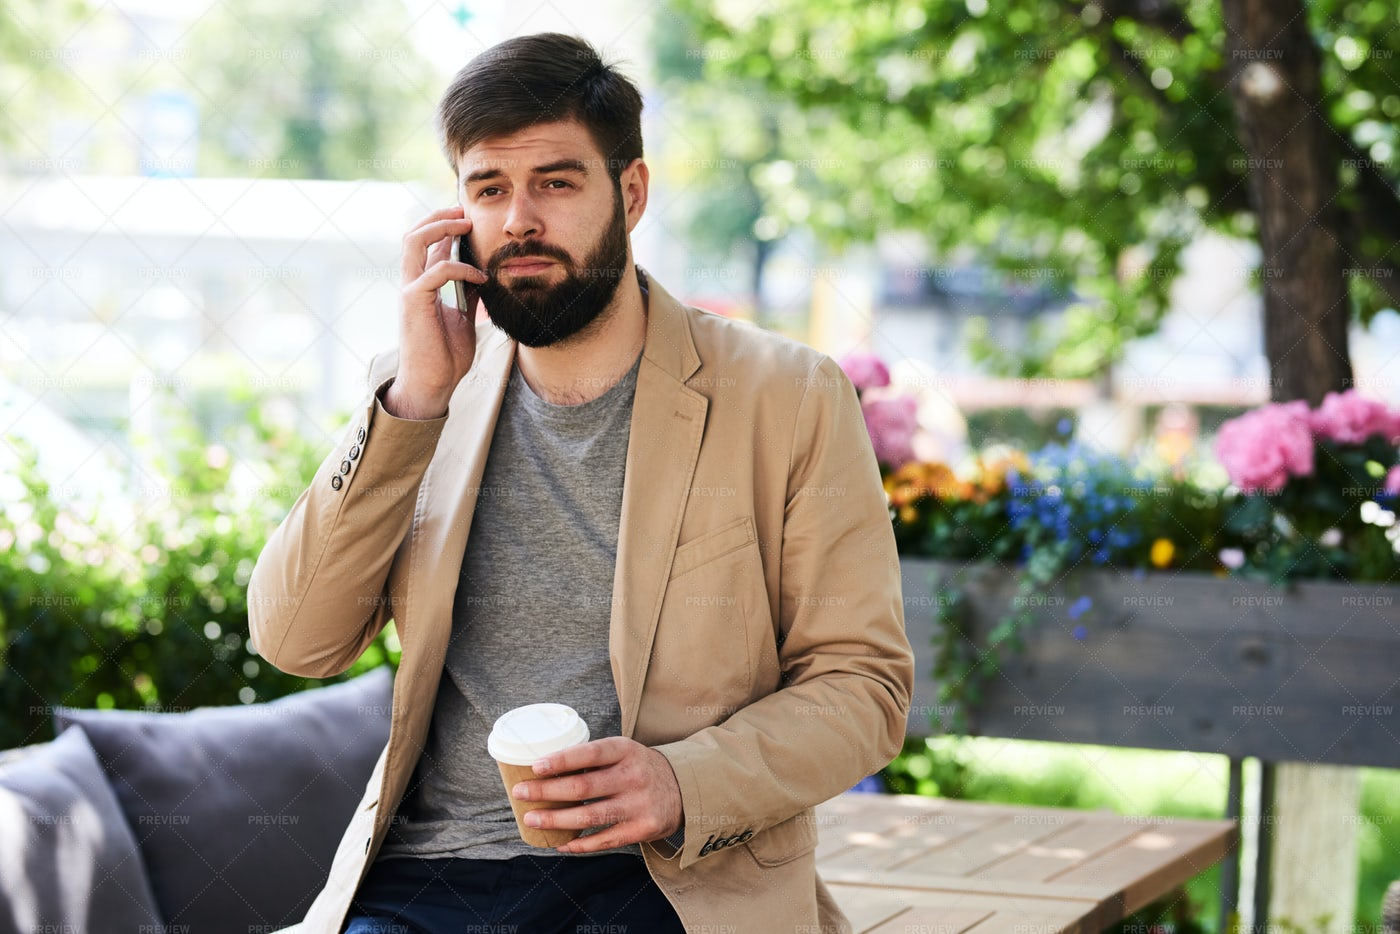 Contemporary Man Speaking By Phone...: Stock Photos